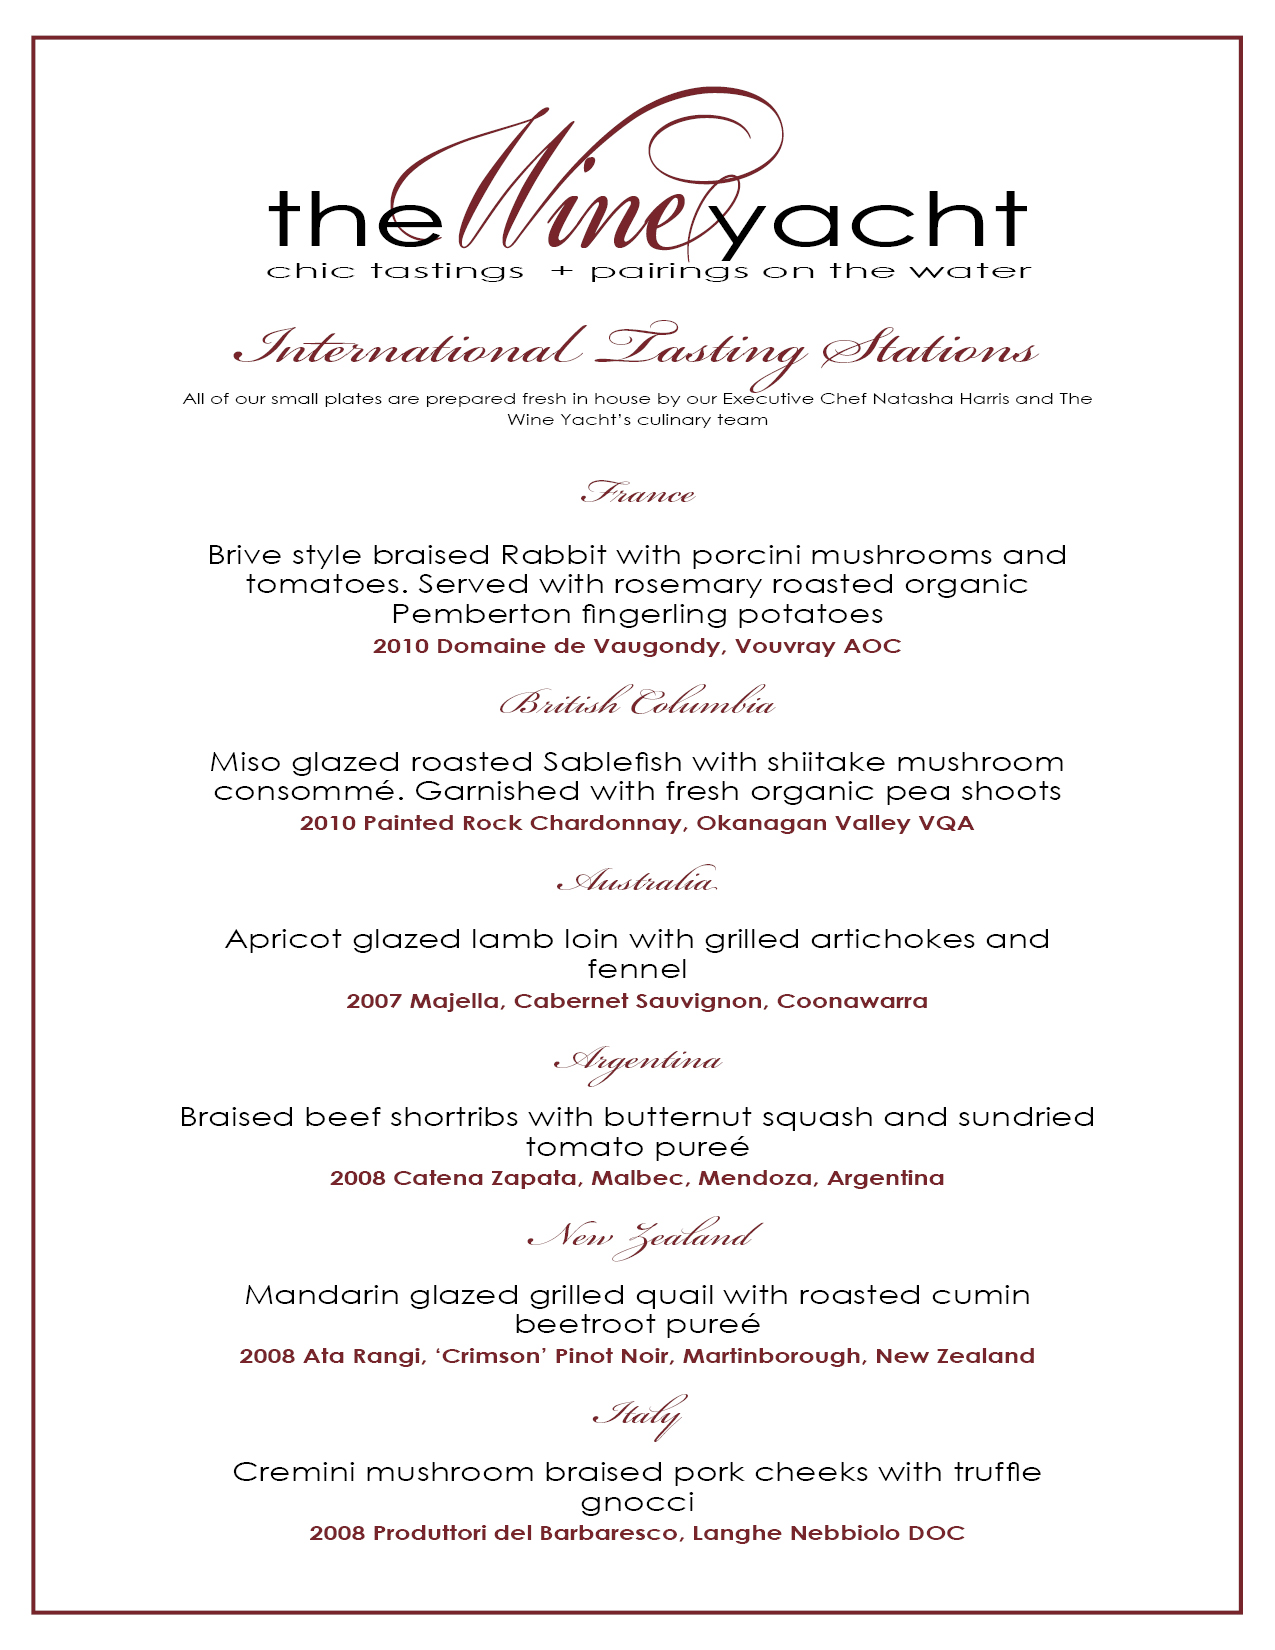 The Wine Yacht Official Launch Tasting Menu